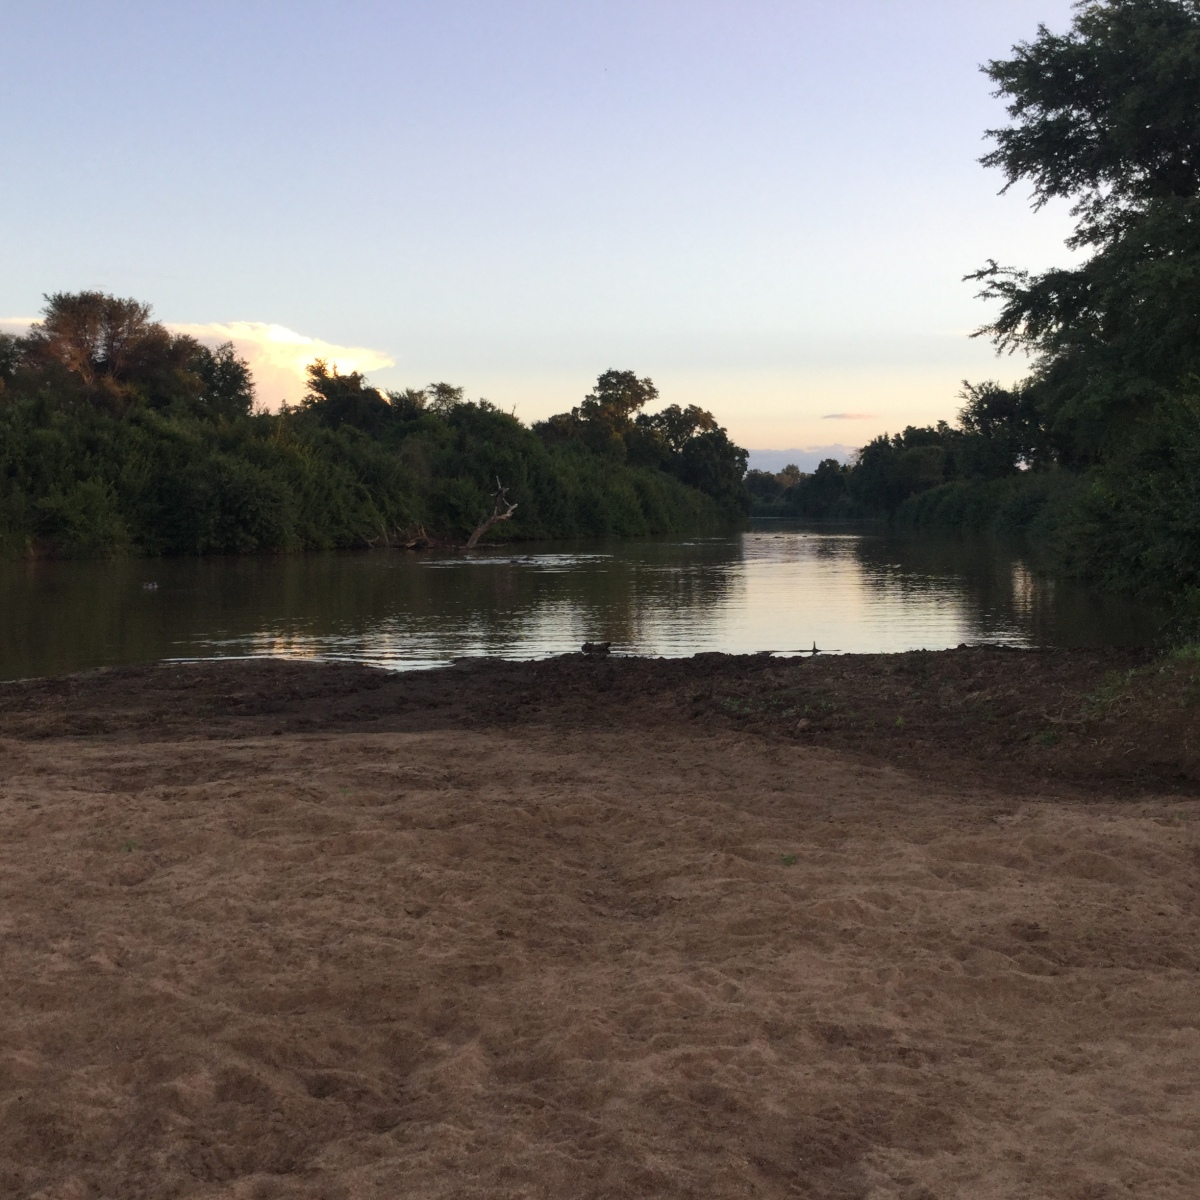 Luvuvu River meeting Limpopo River